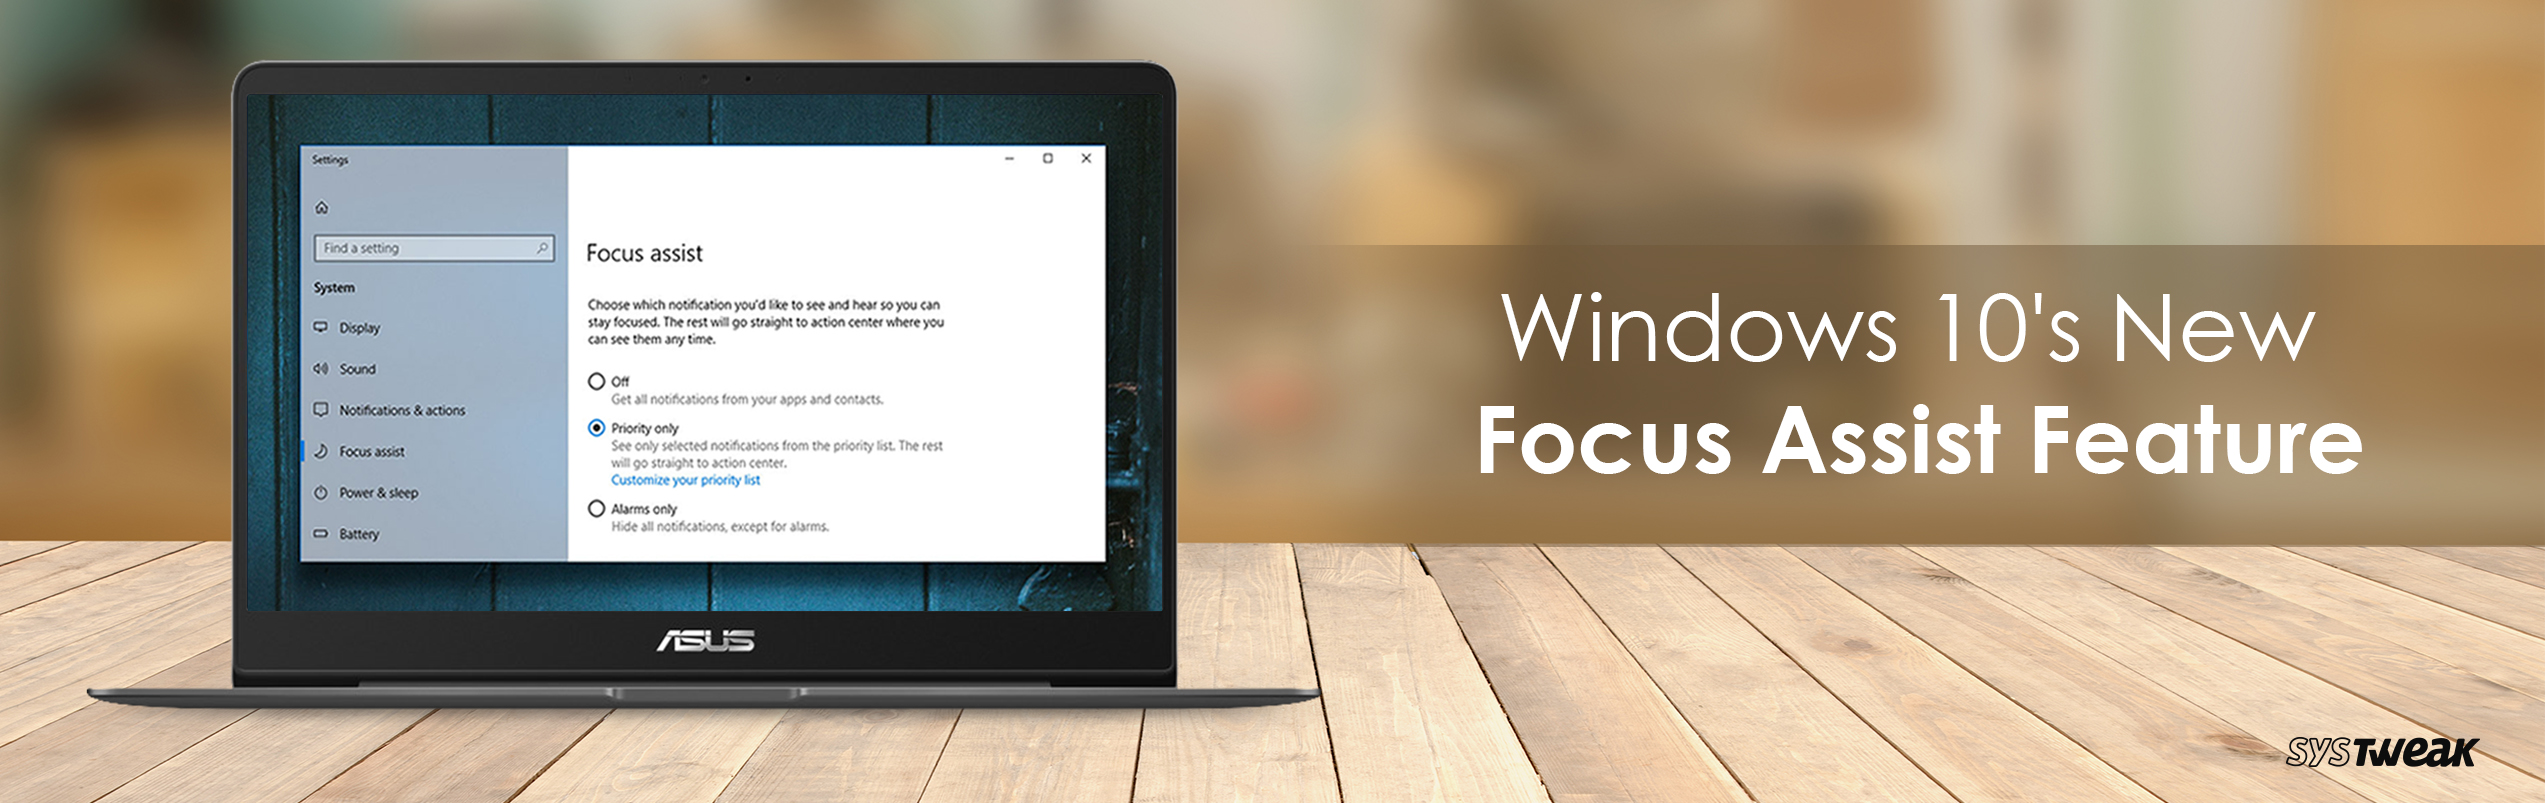 How To Use Windows 10's New Focus Assist Feature